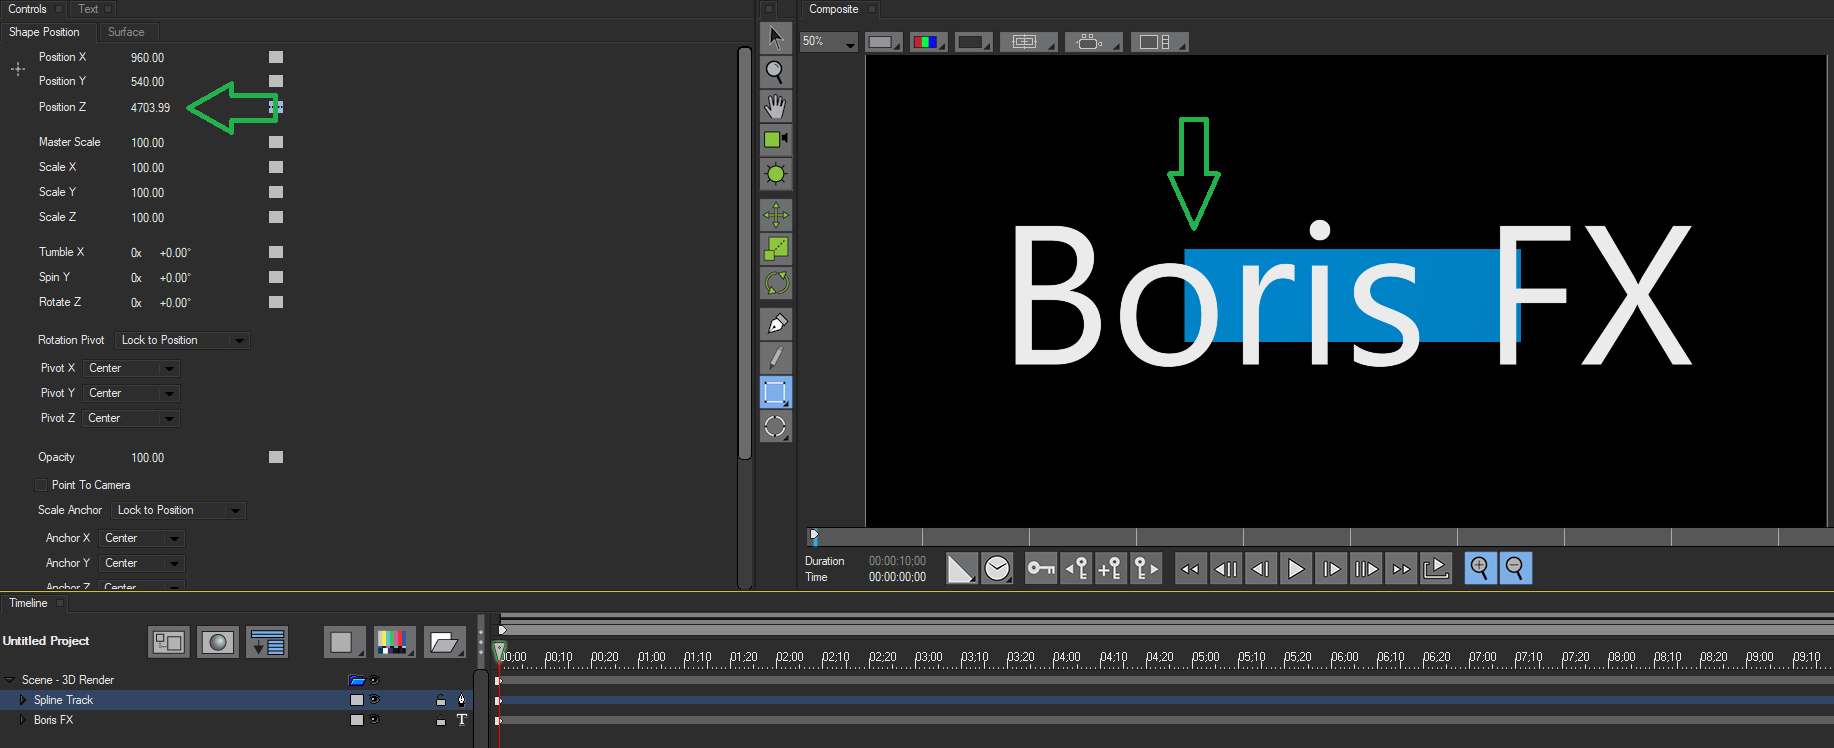 Boris FX | Title Studio: The Render Tab